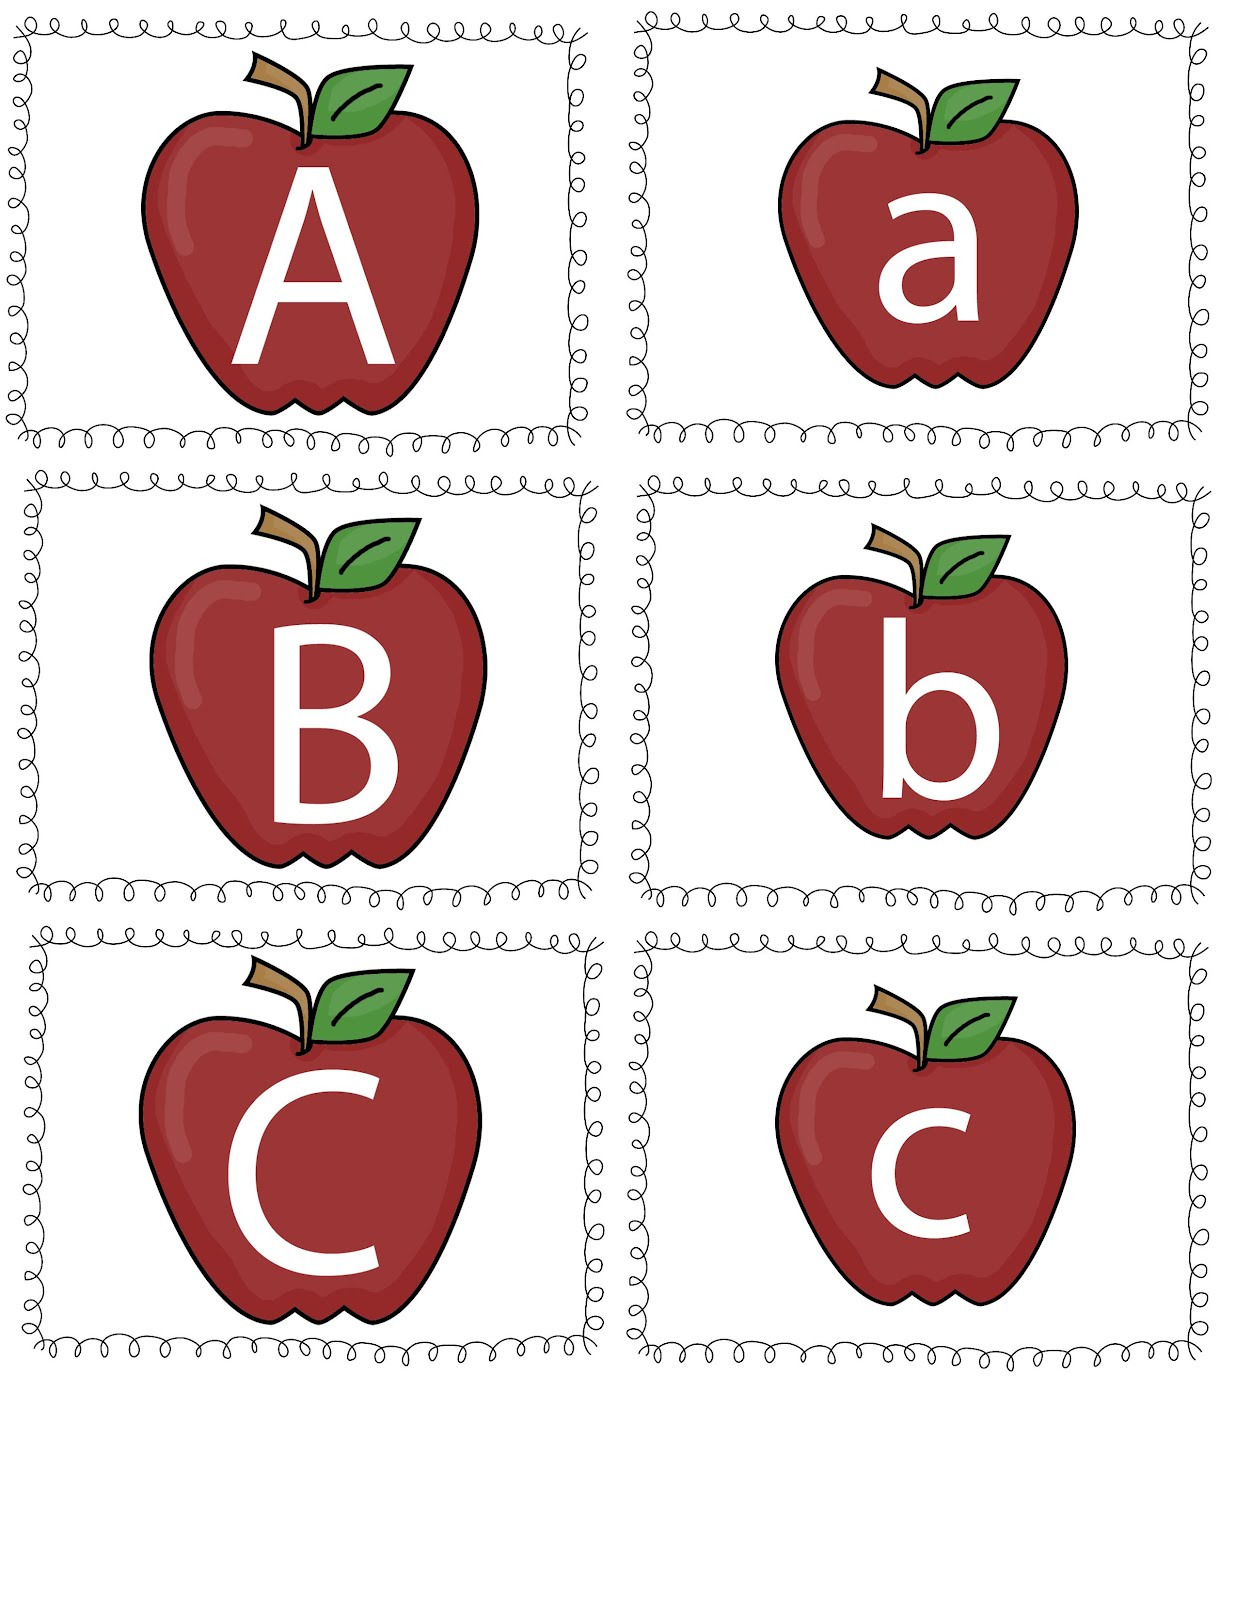 Counting Apples Worksheet